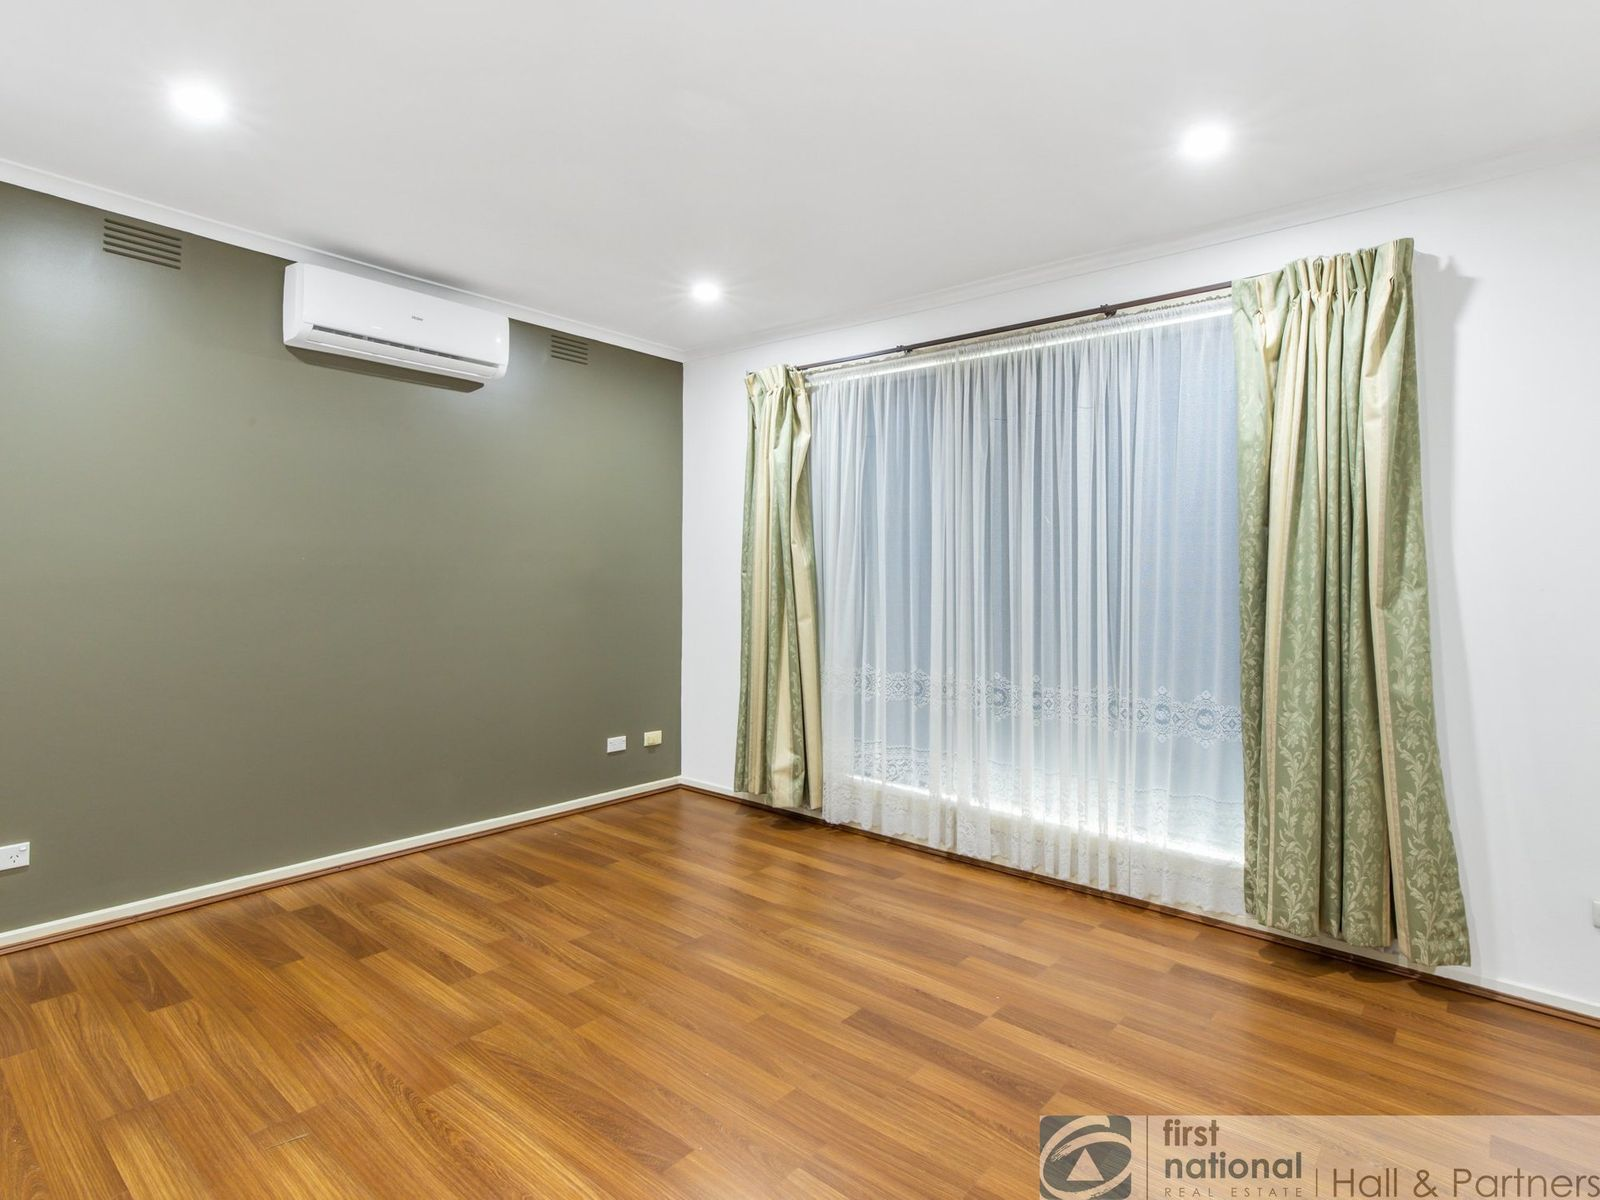 7/6-8 Cypress Grove, Dandenong North, VIC 3175